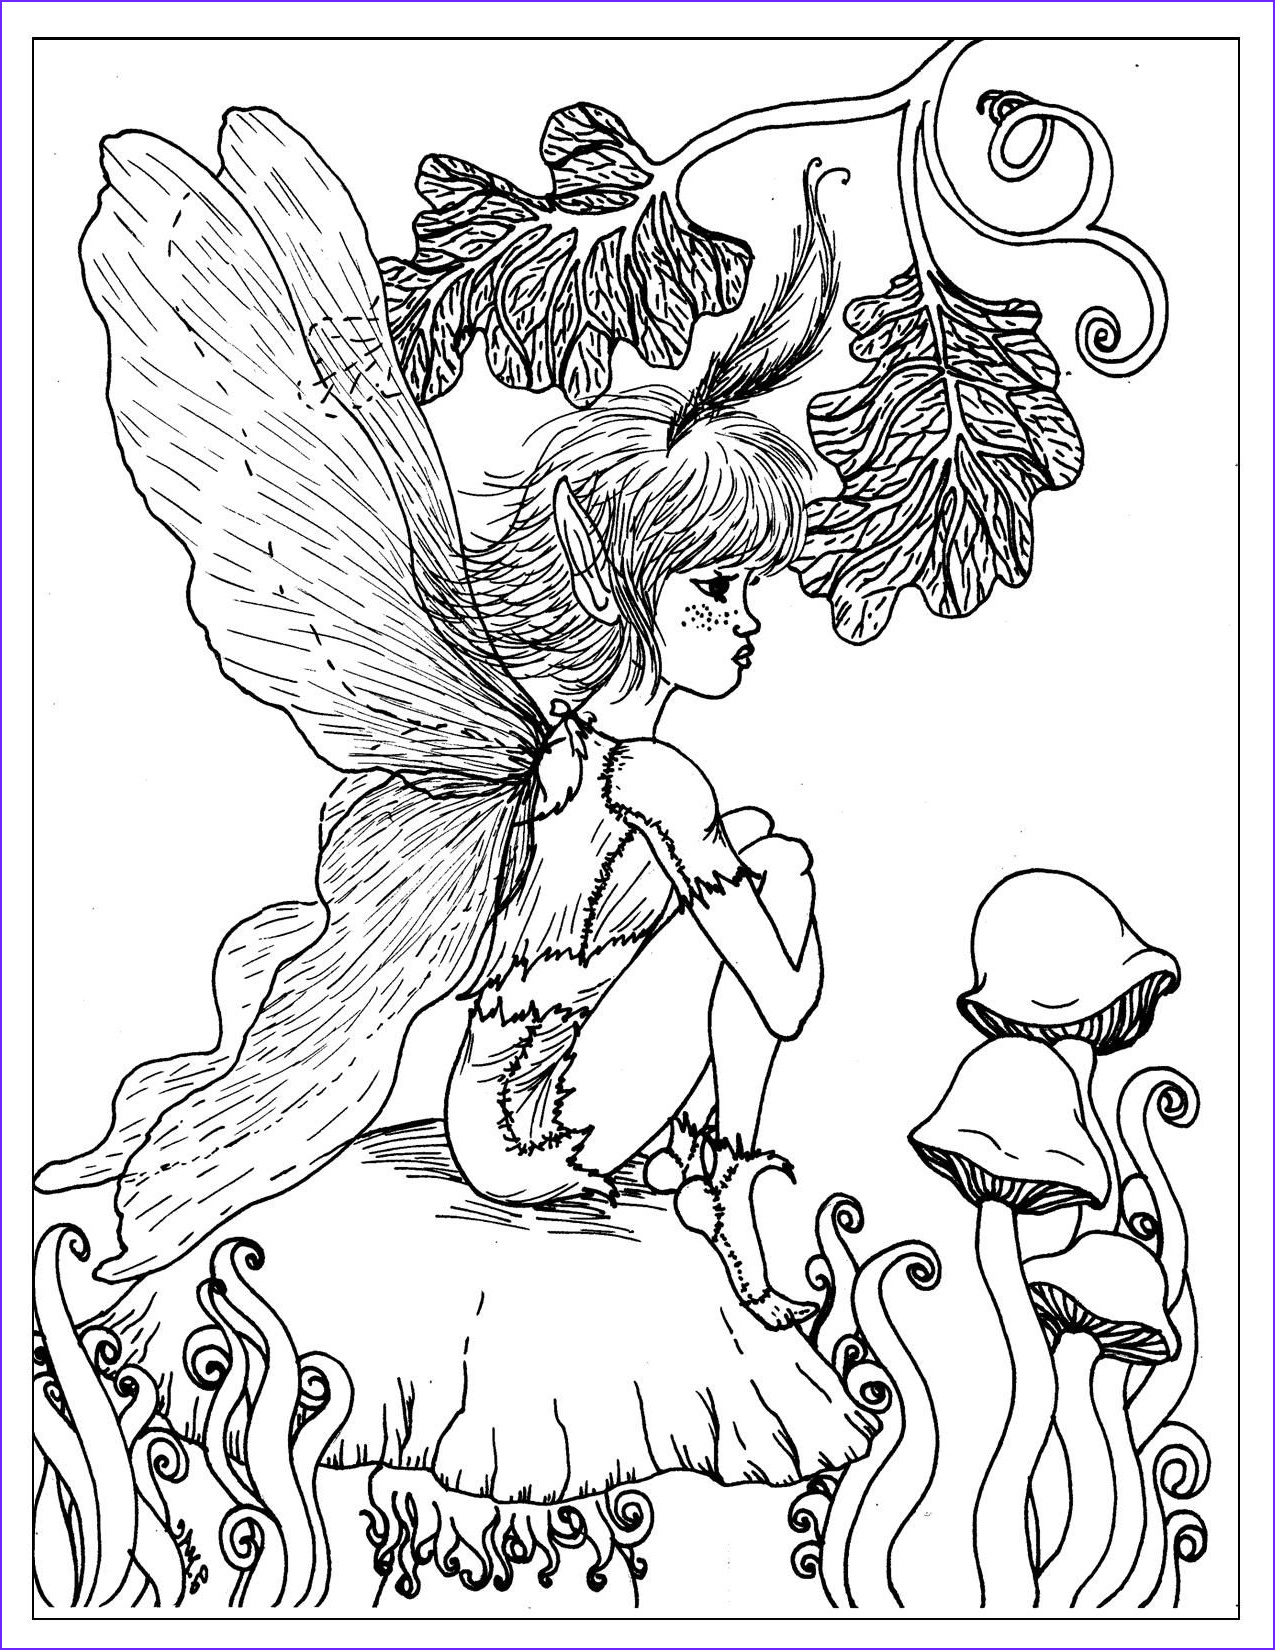 Adult Coloring Books Download New Photos Fantasy Coloring Pages for Adults to and Print